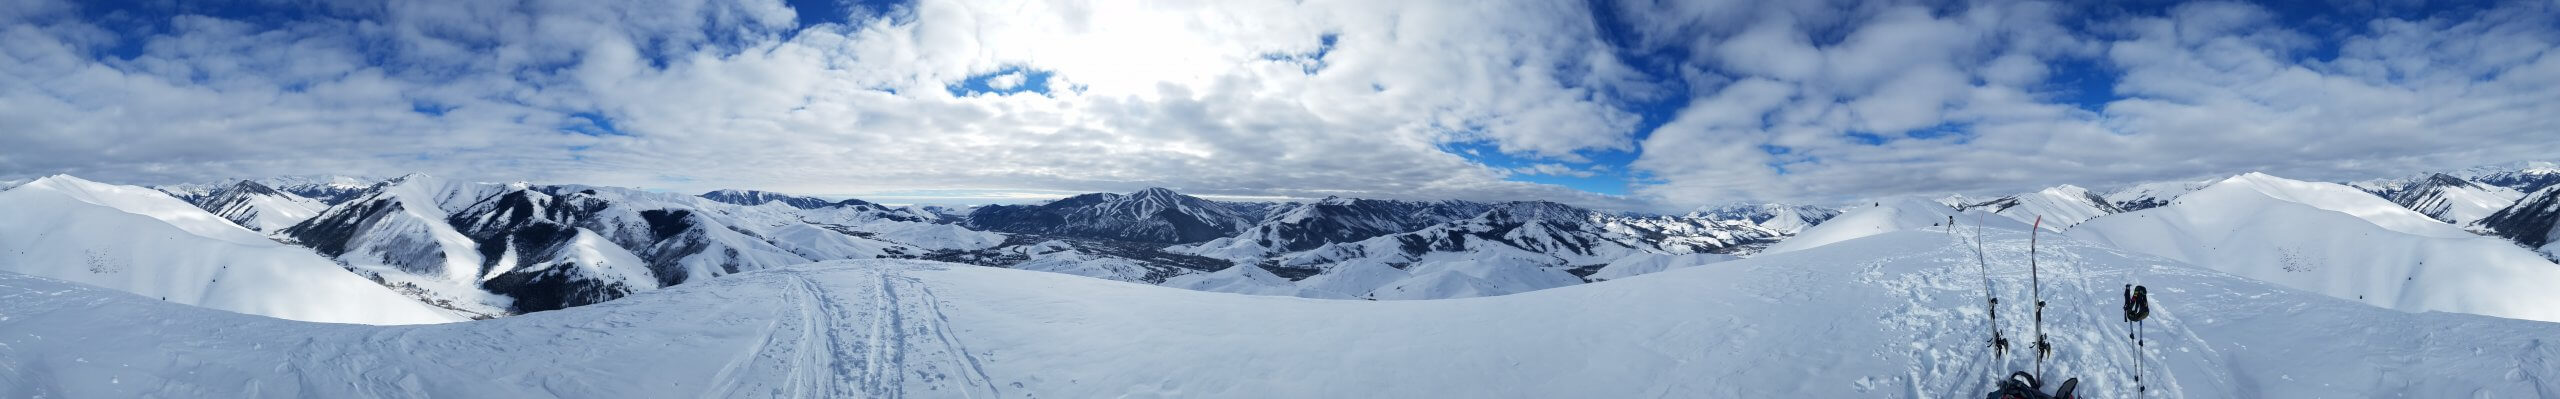 panoramic shot of snowy mountains